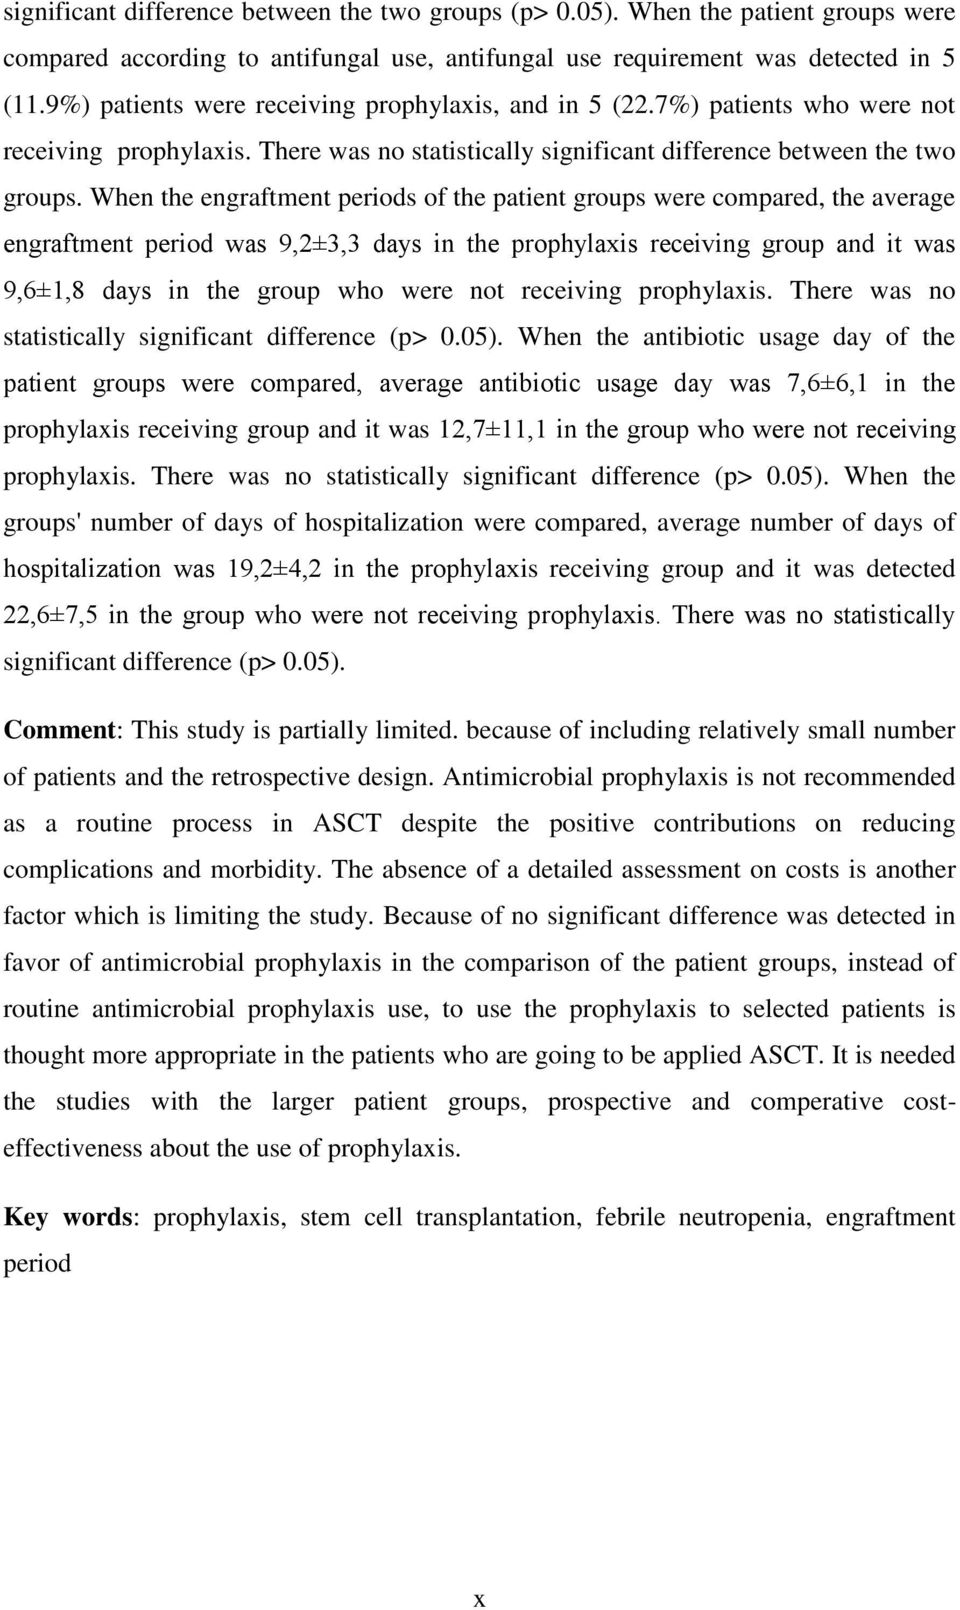 When the engraftment periods of the patient groups were compared, the average engraftment period was 9,2±3,3 days in the prophylaxis receiving group and it was 9,6±1,8 days in the group who were not